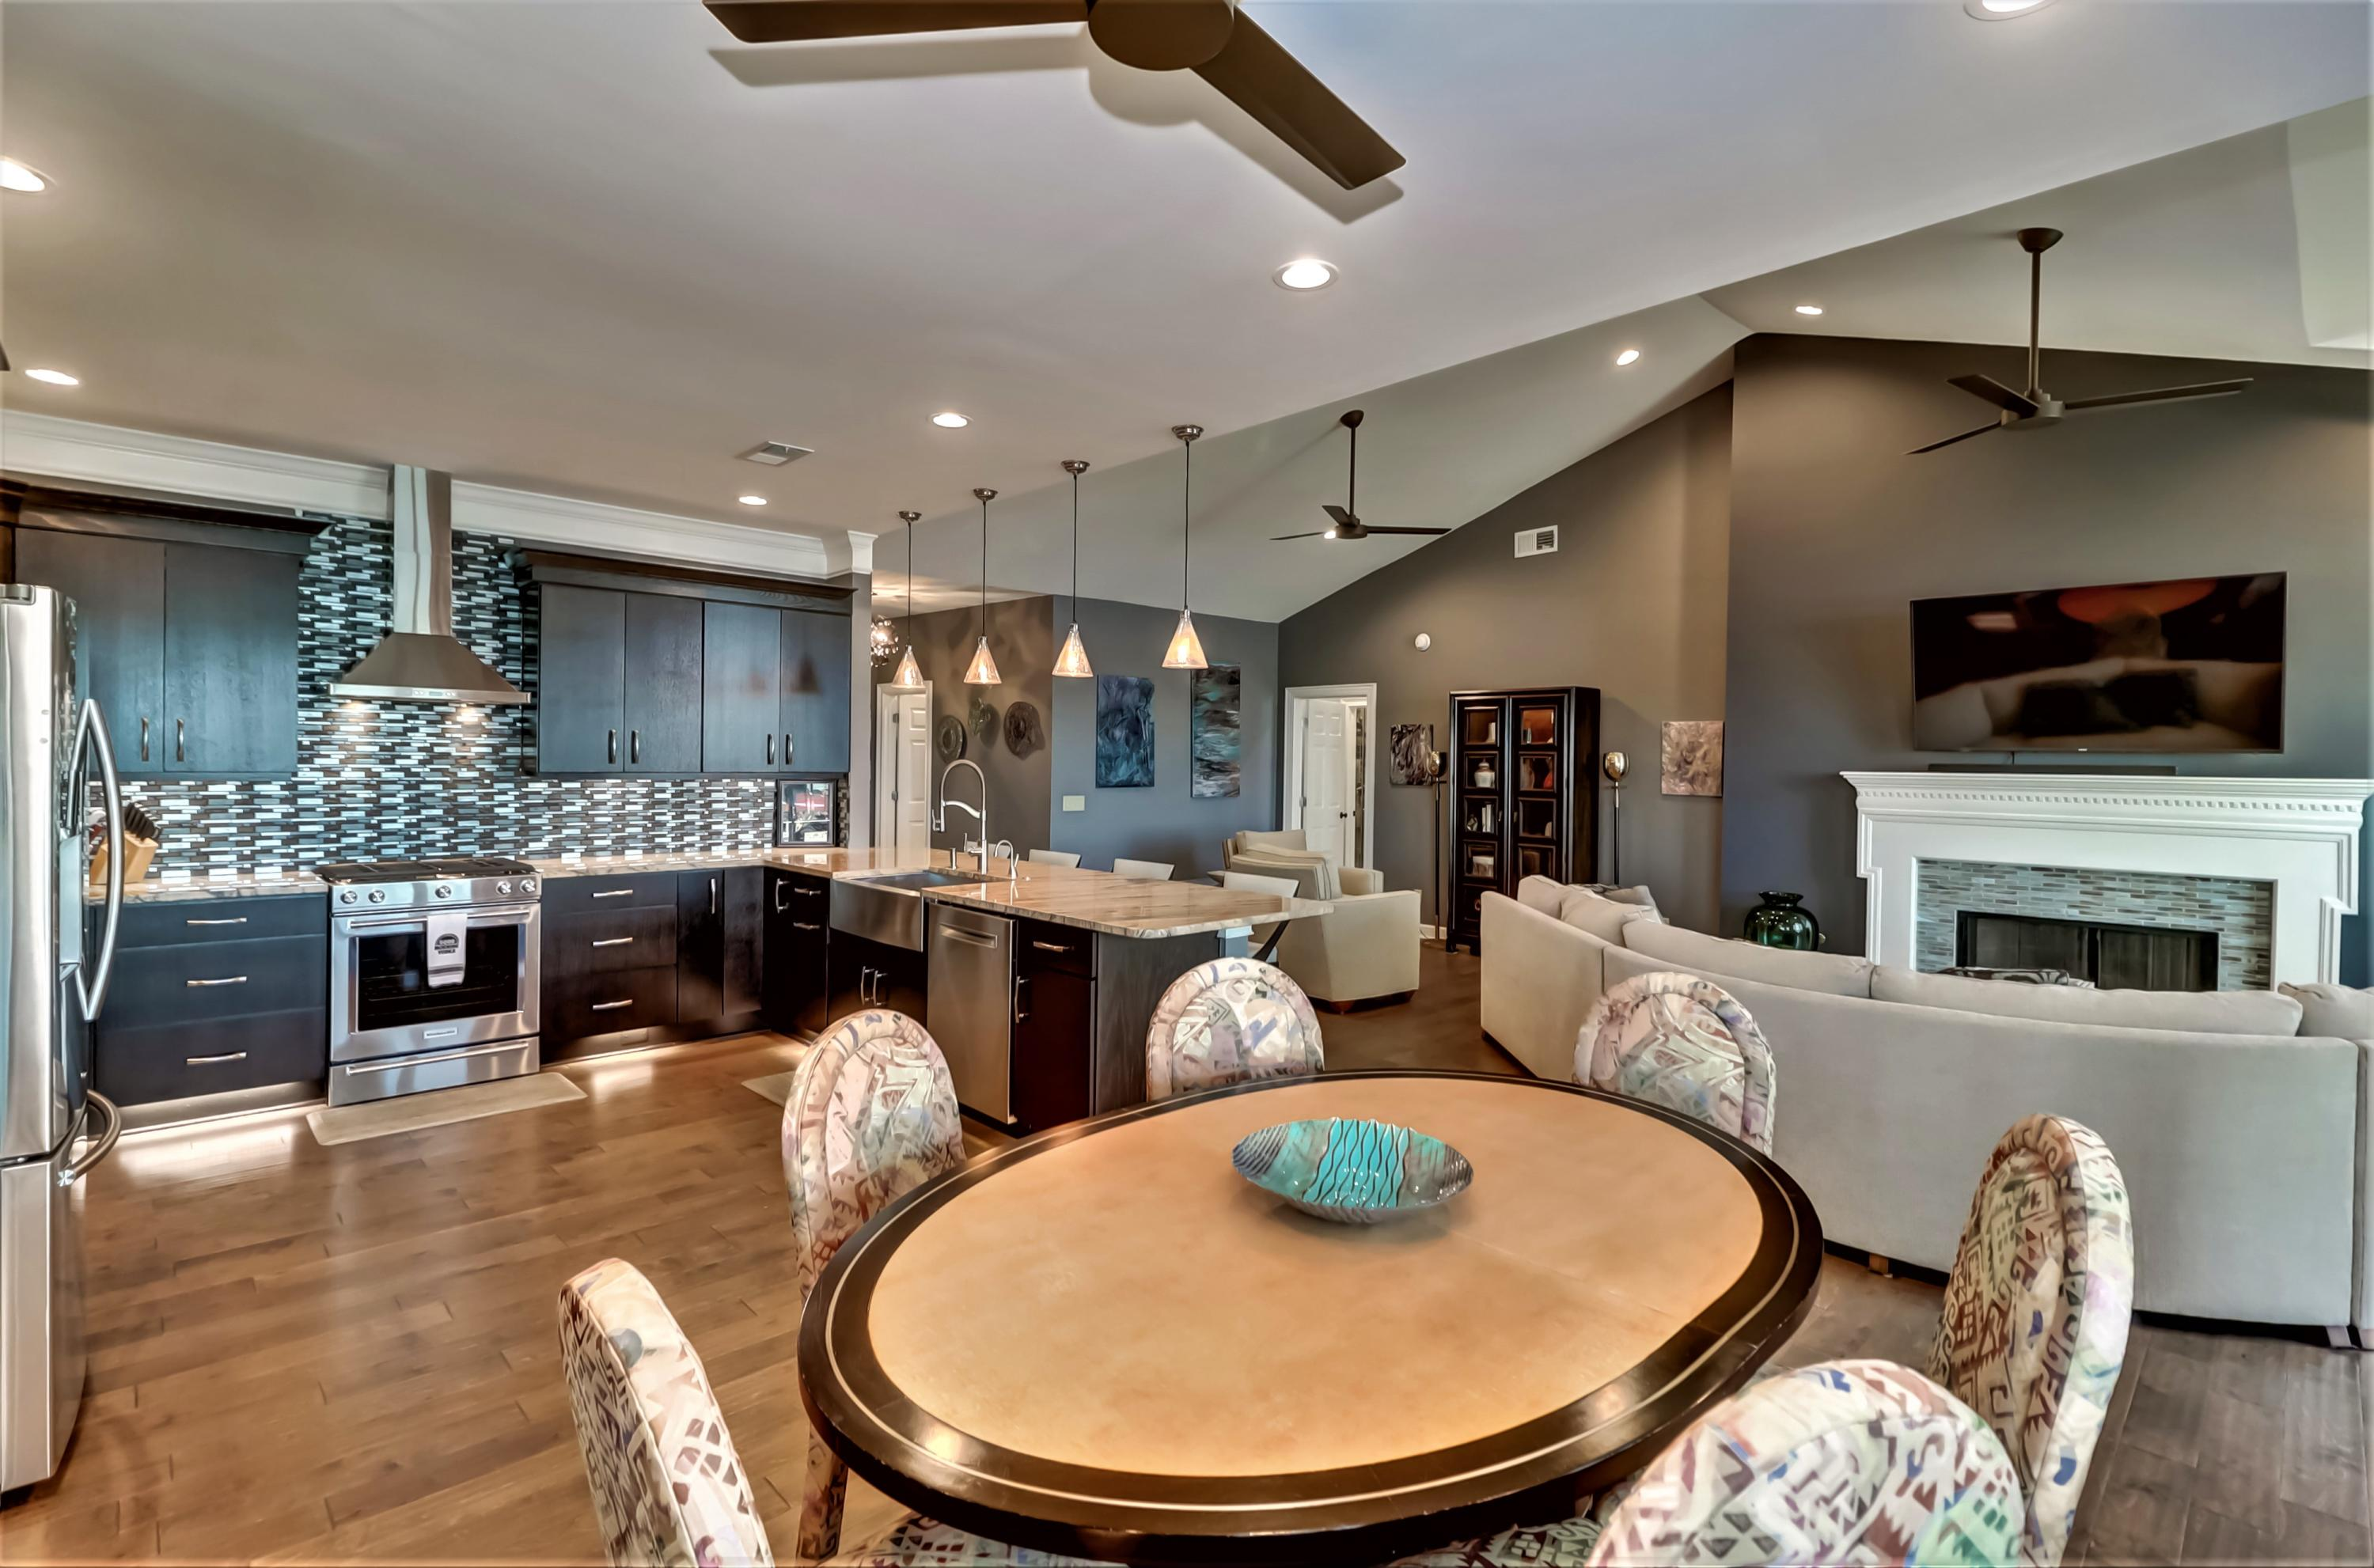 Simmons Pointe Homes For Sale - 1551 Ben Sawyer, Mount Pleasant, SC - 8